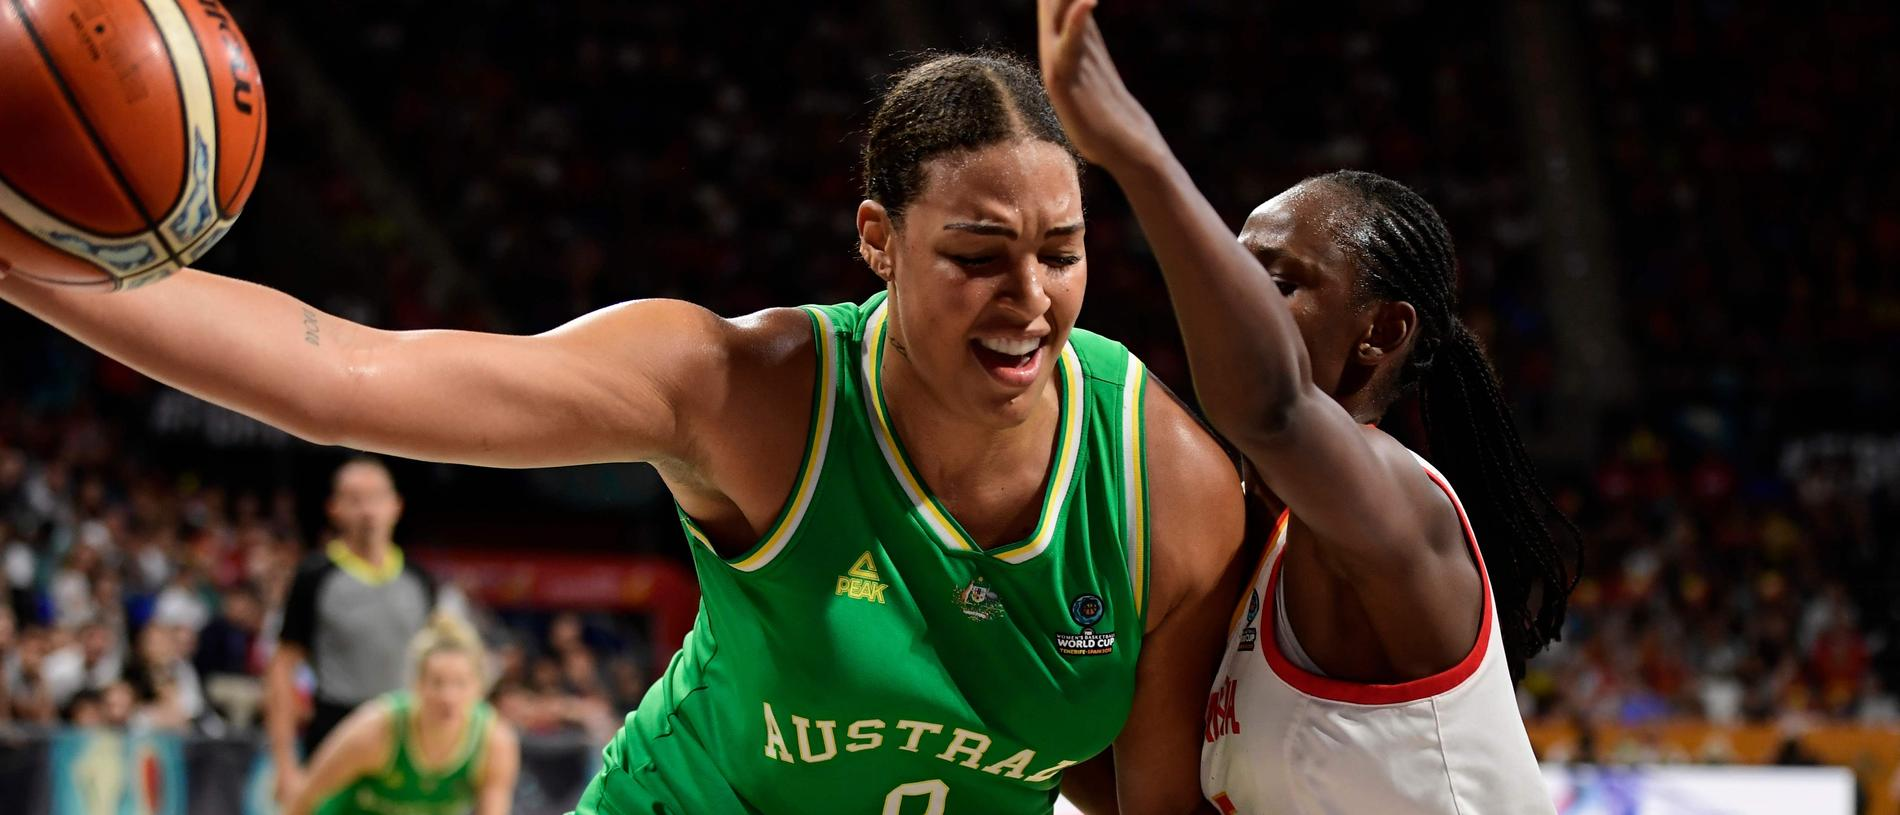 Australia's center Liz Cambage (L) vies with Spain's forward Astou Ndour during the FIBA 2018 Women's Basketball World Cup semifinal match between Spain and Australia at the Santiago Martin arena in San Cristobal de la Laguna on the Canary island of Tenerife on September 29, 2018. (Photo by JAVIER SORIANO / AFP)